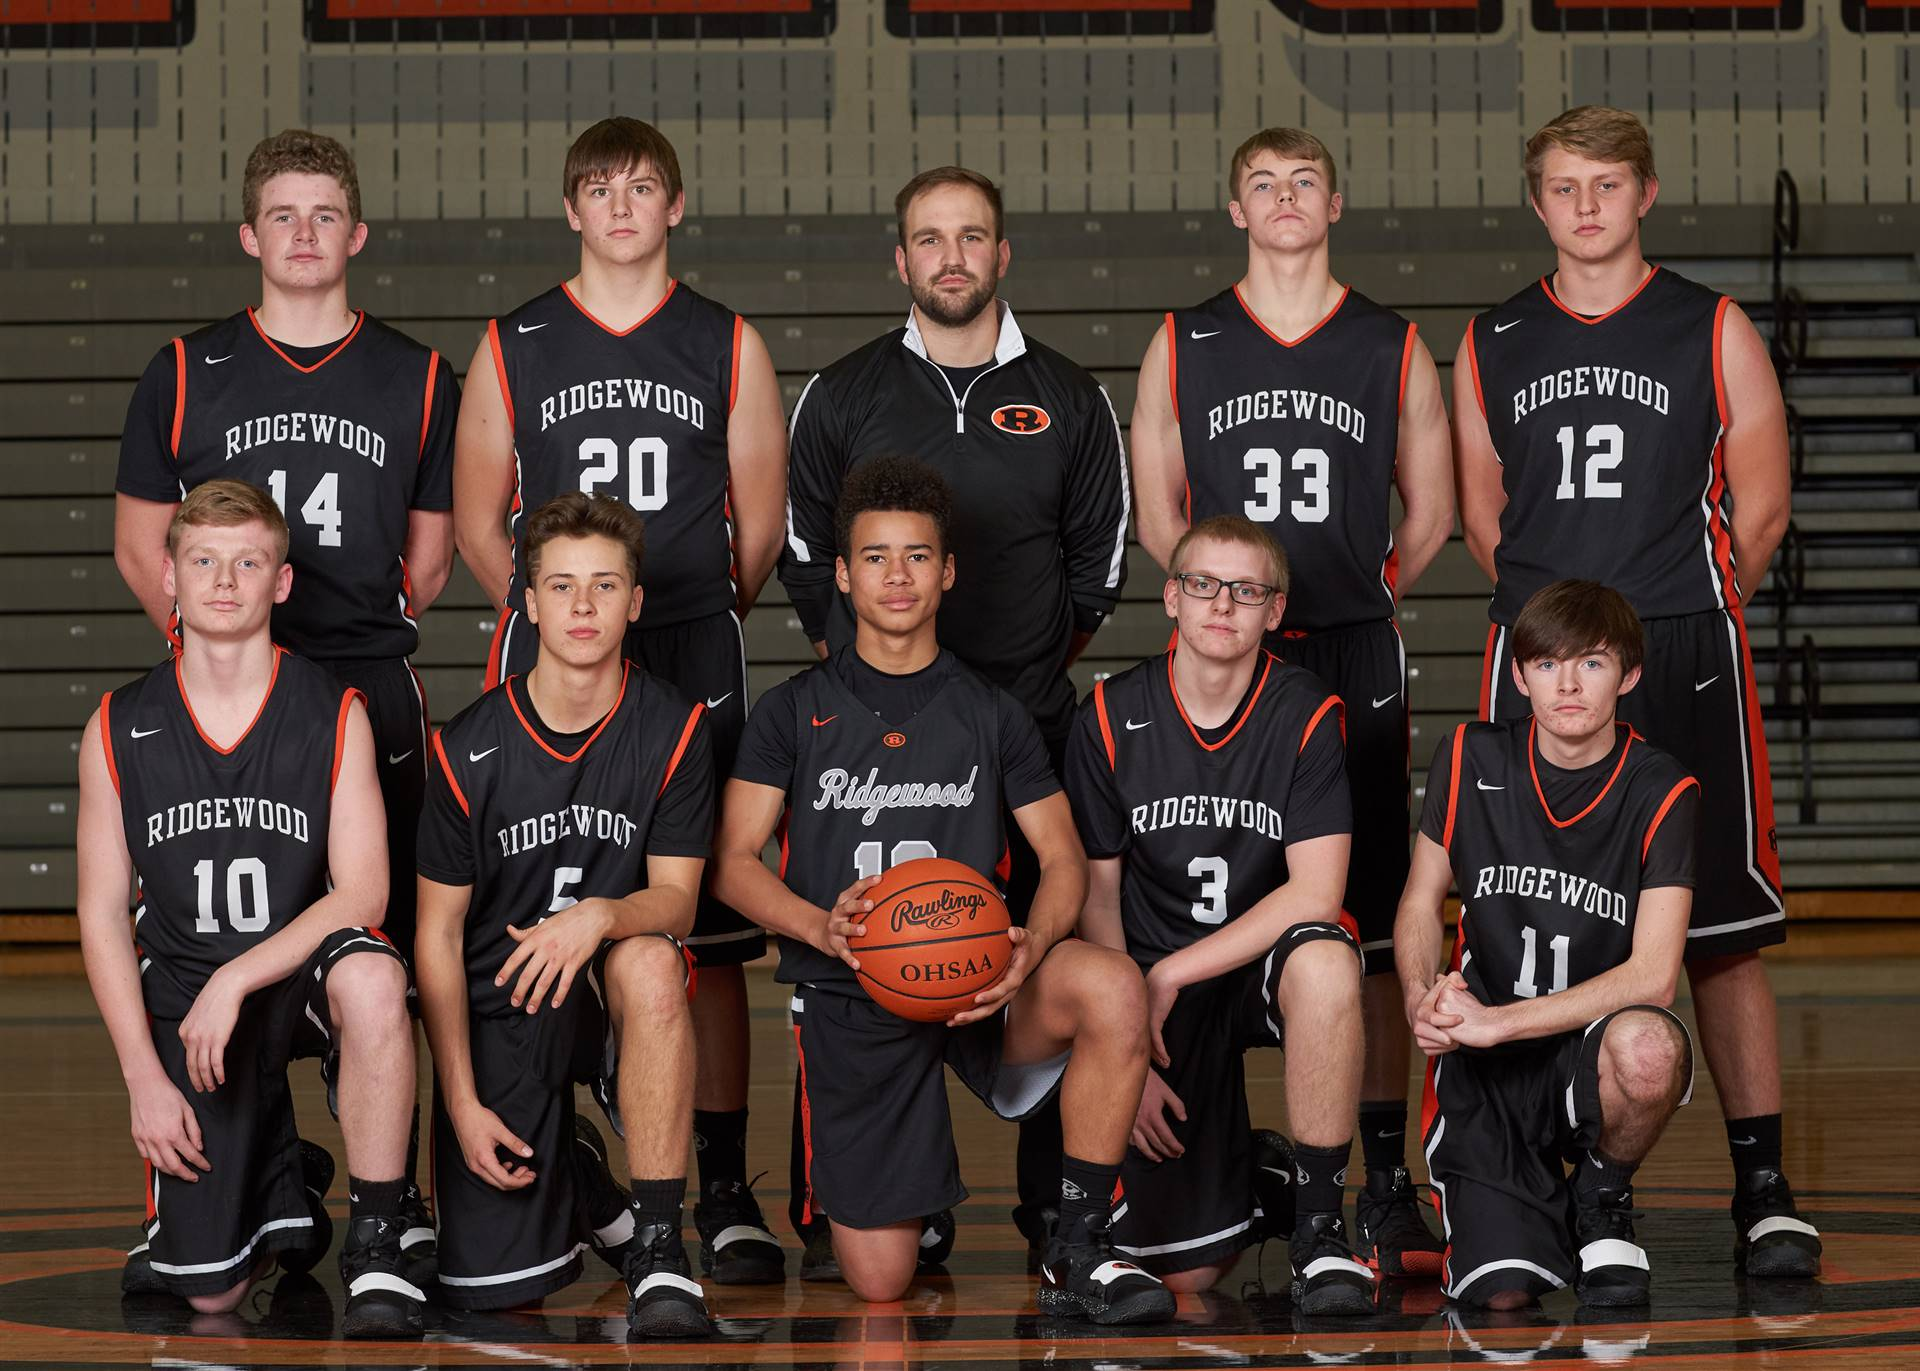 HS Boys Basketball - JV Team